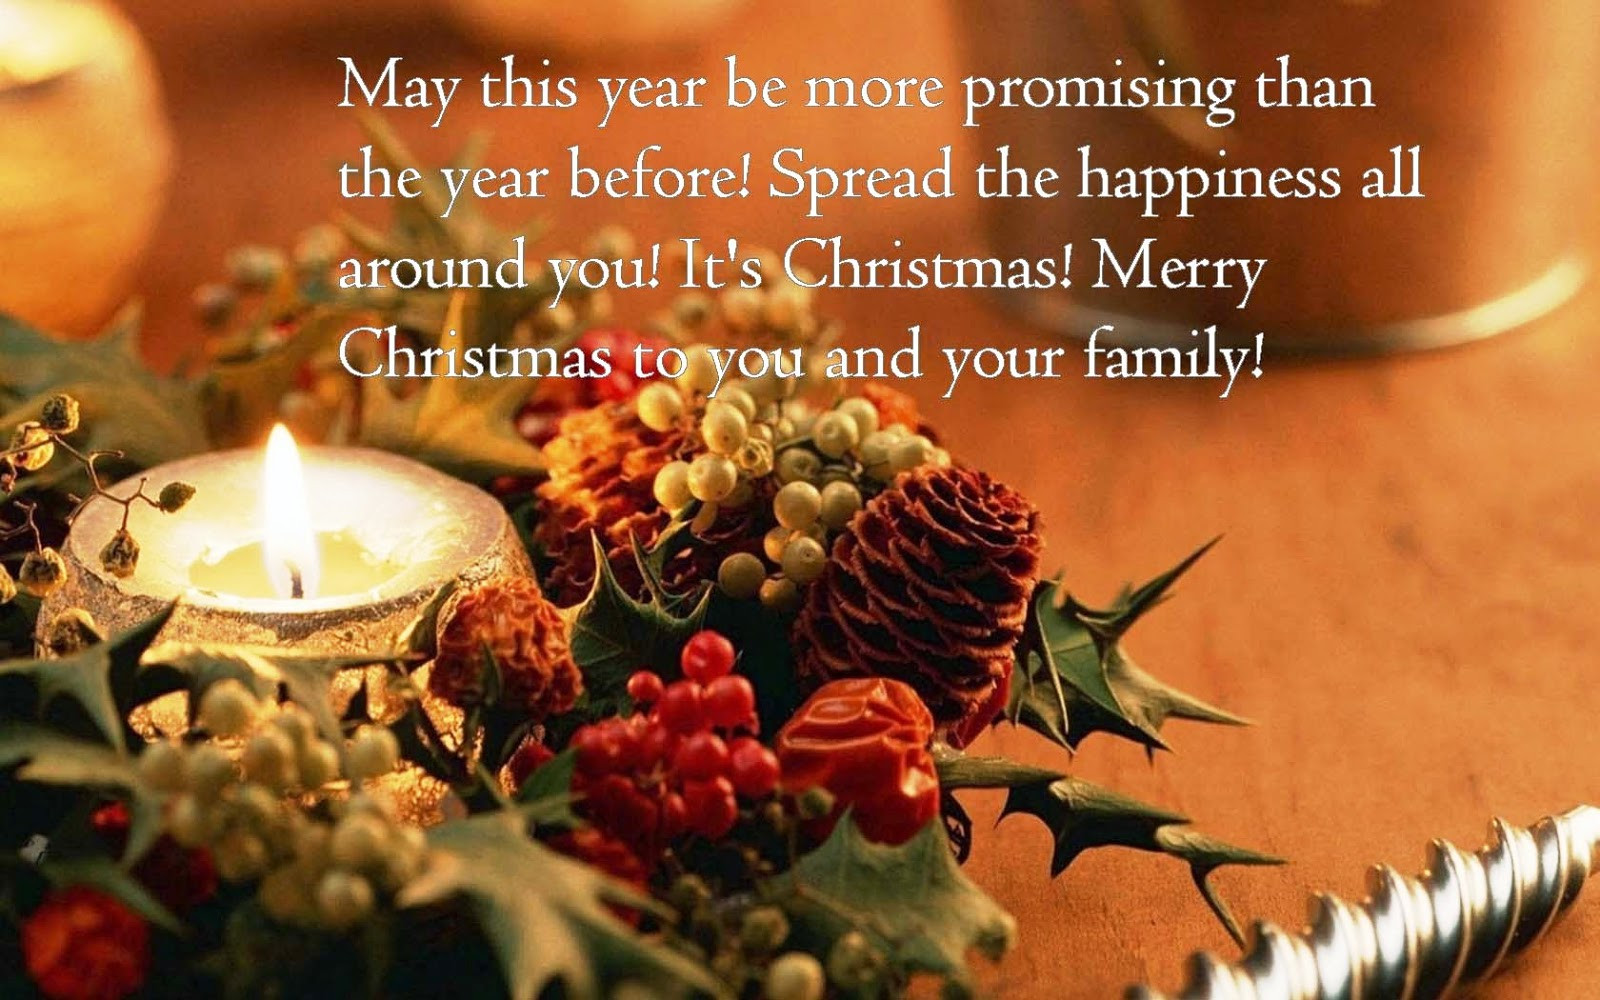 Christmas Day Quotes  Merry Christmas 2015 Wishes Quotes Cards and Songs